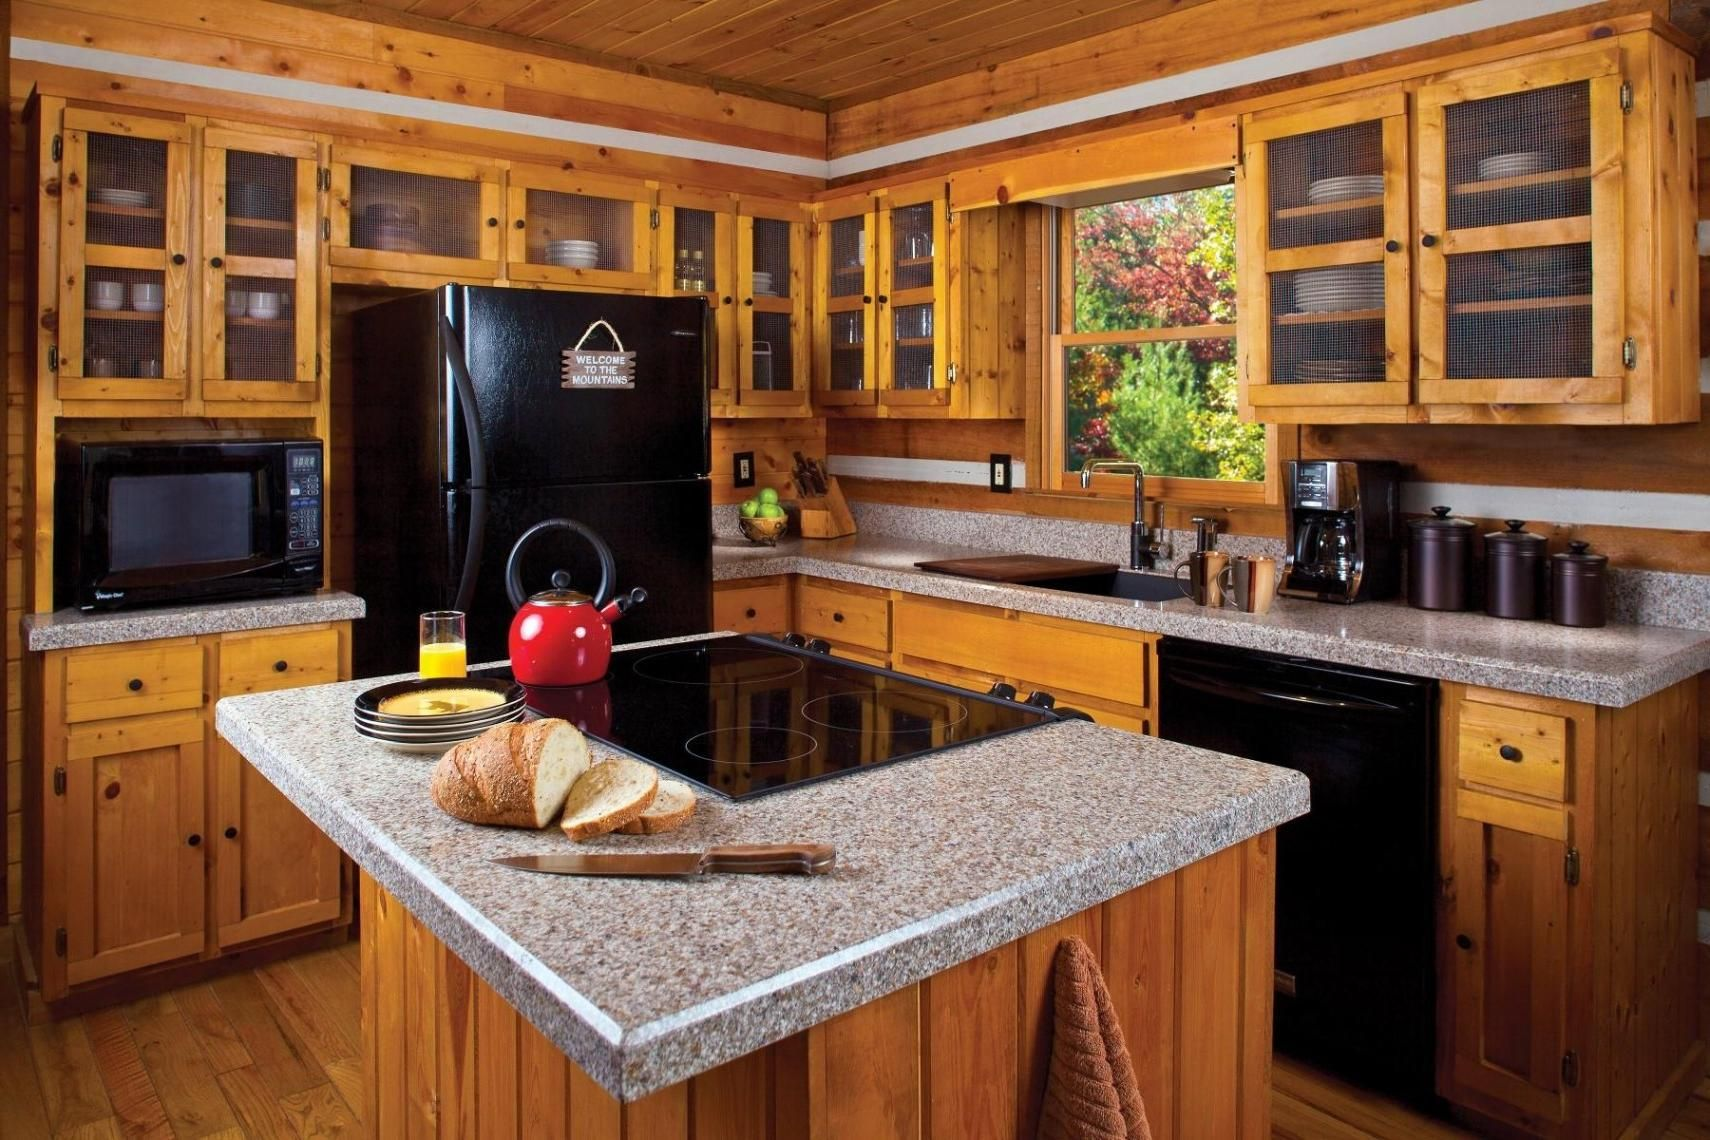 Natural oak wood kitchen cabinets and island installed in small rustic kitchen idea and combined with gray granite countertops and black kitchen appliances